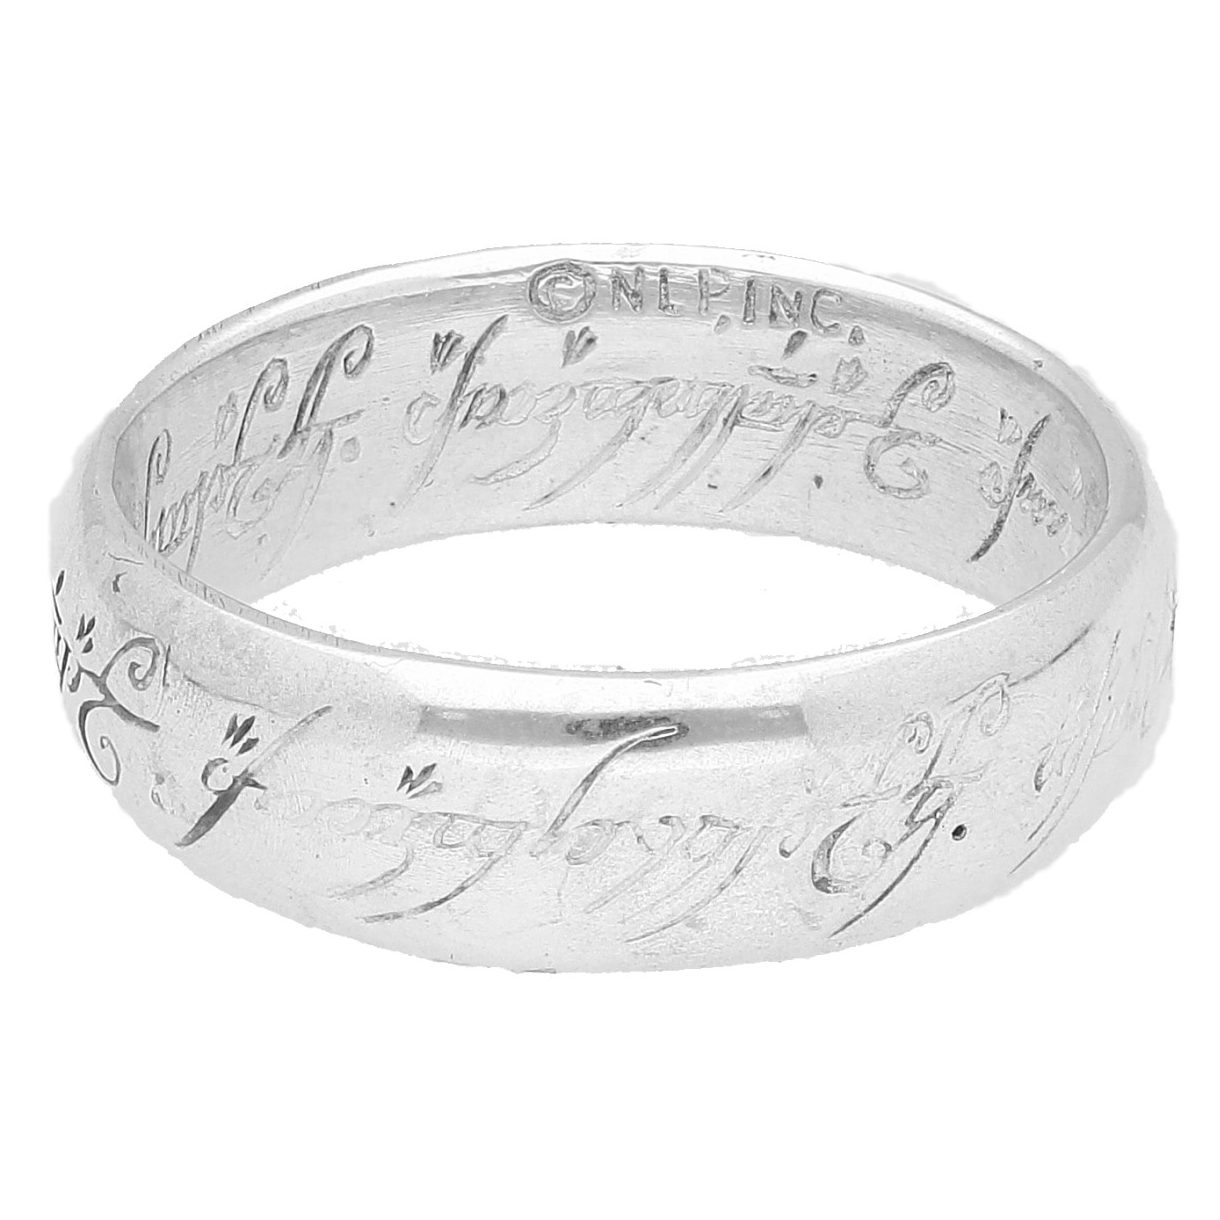 Lord Of The Rings Wedding Band.Sterling Silver Lord Of The Rings Wedding Band Size V 1 2 7mm